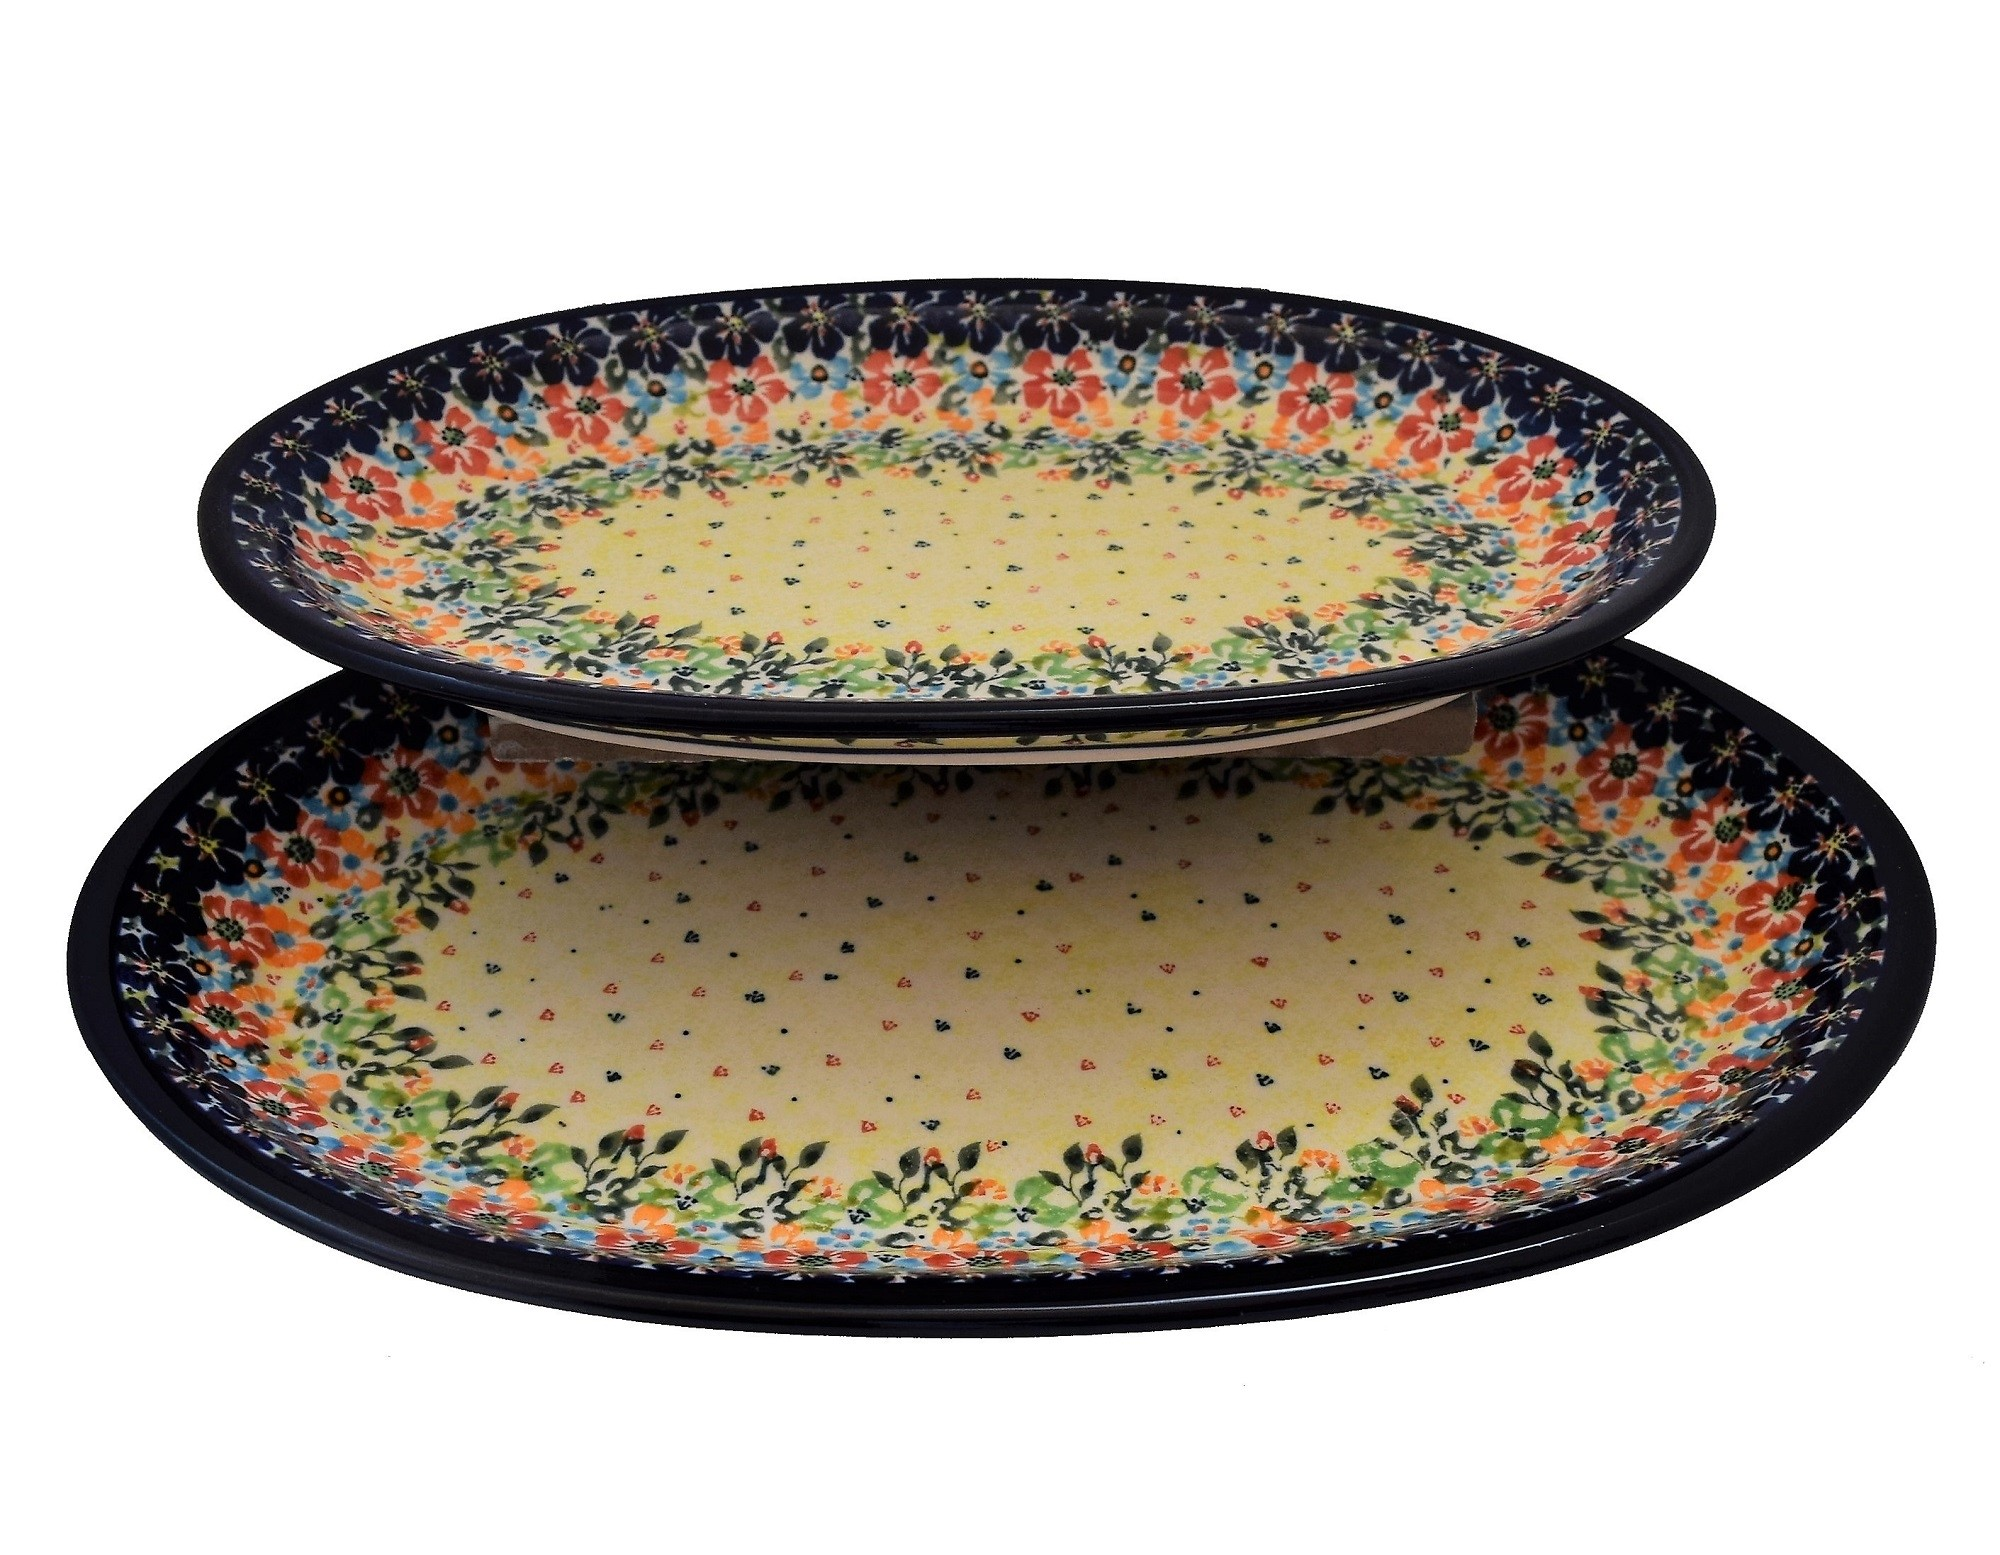 Pottery Avenue offers this 2-pc Oval Stoneware Platter Set - 126465C262 Flowering Splendor